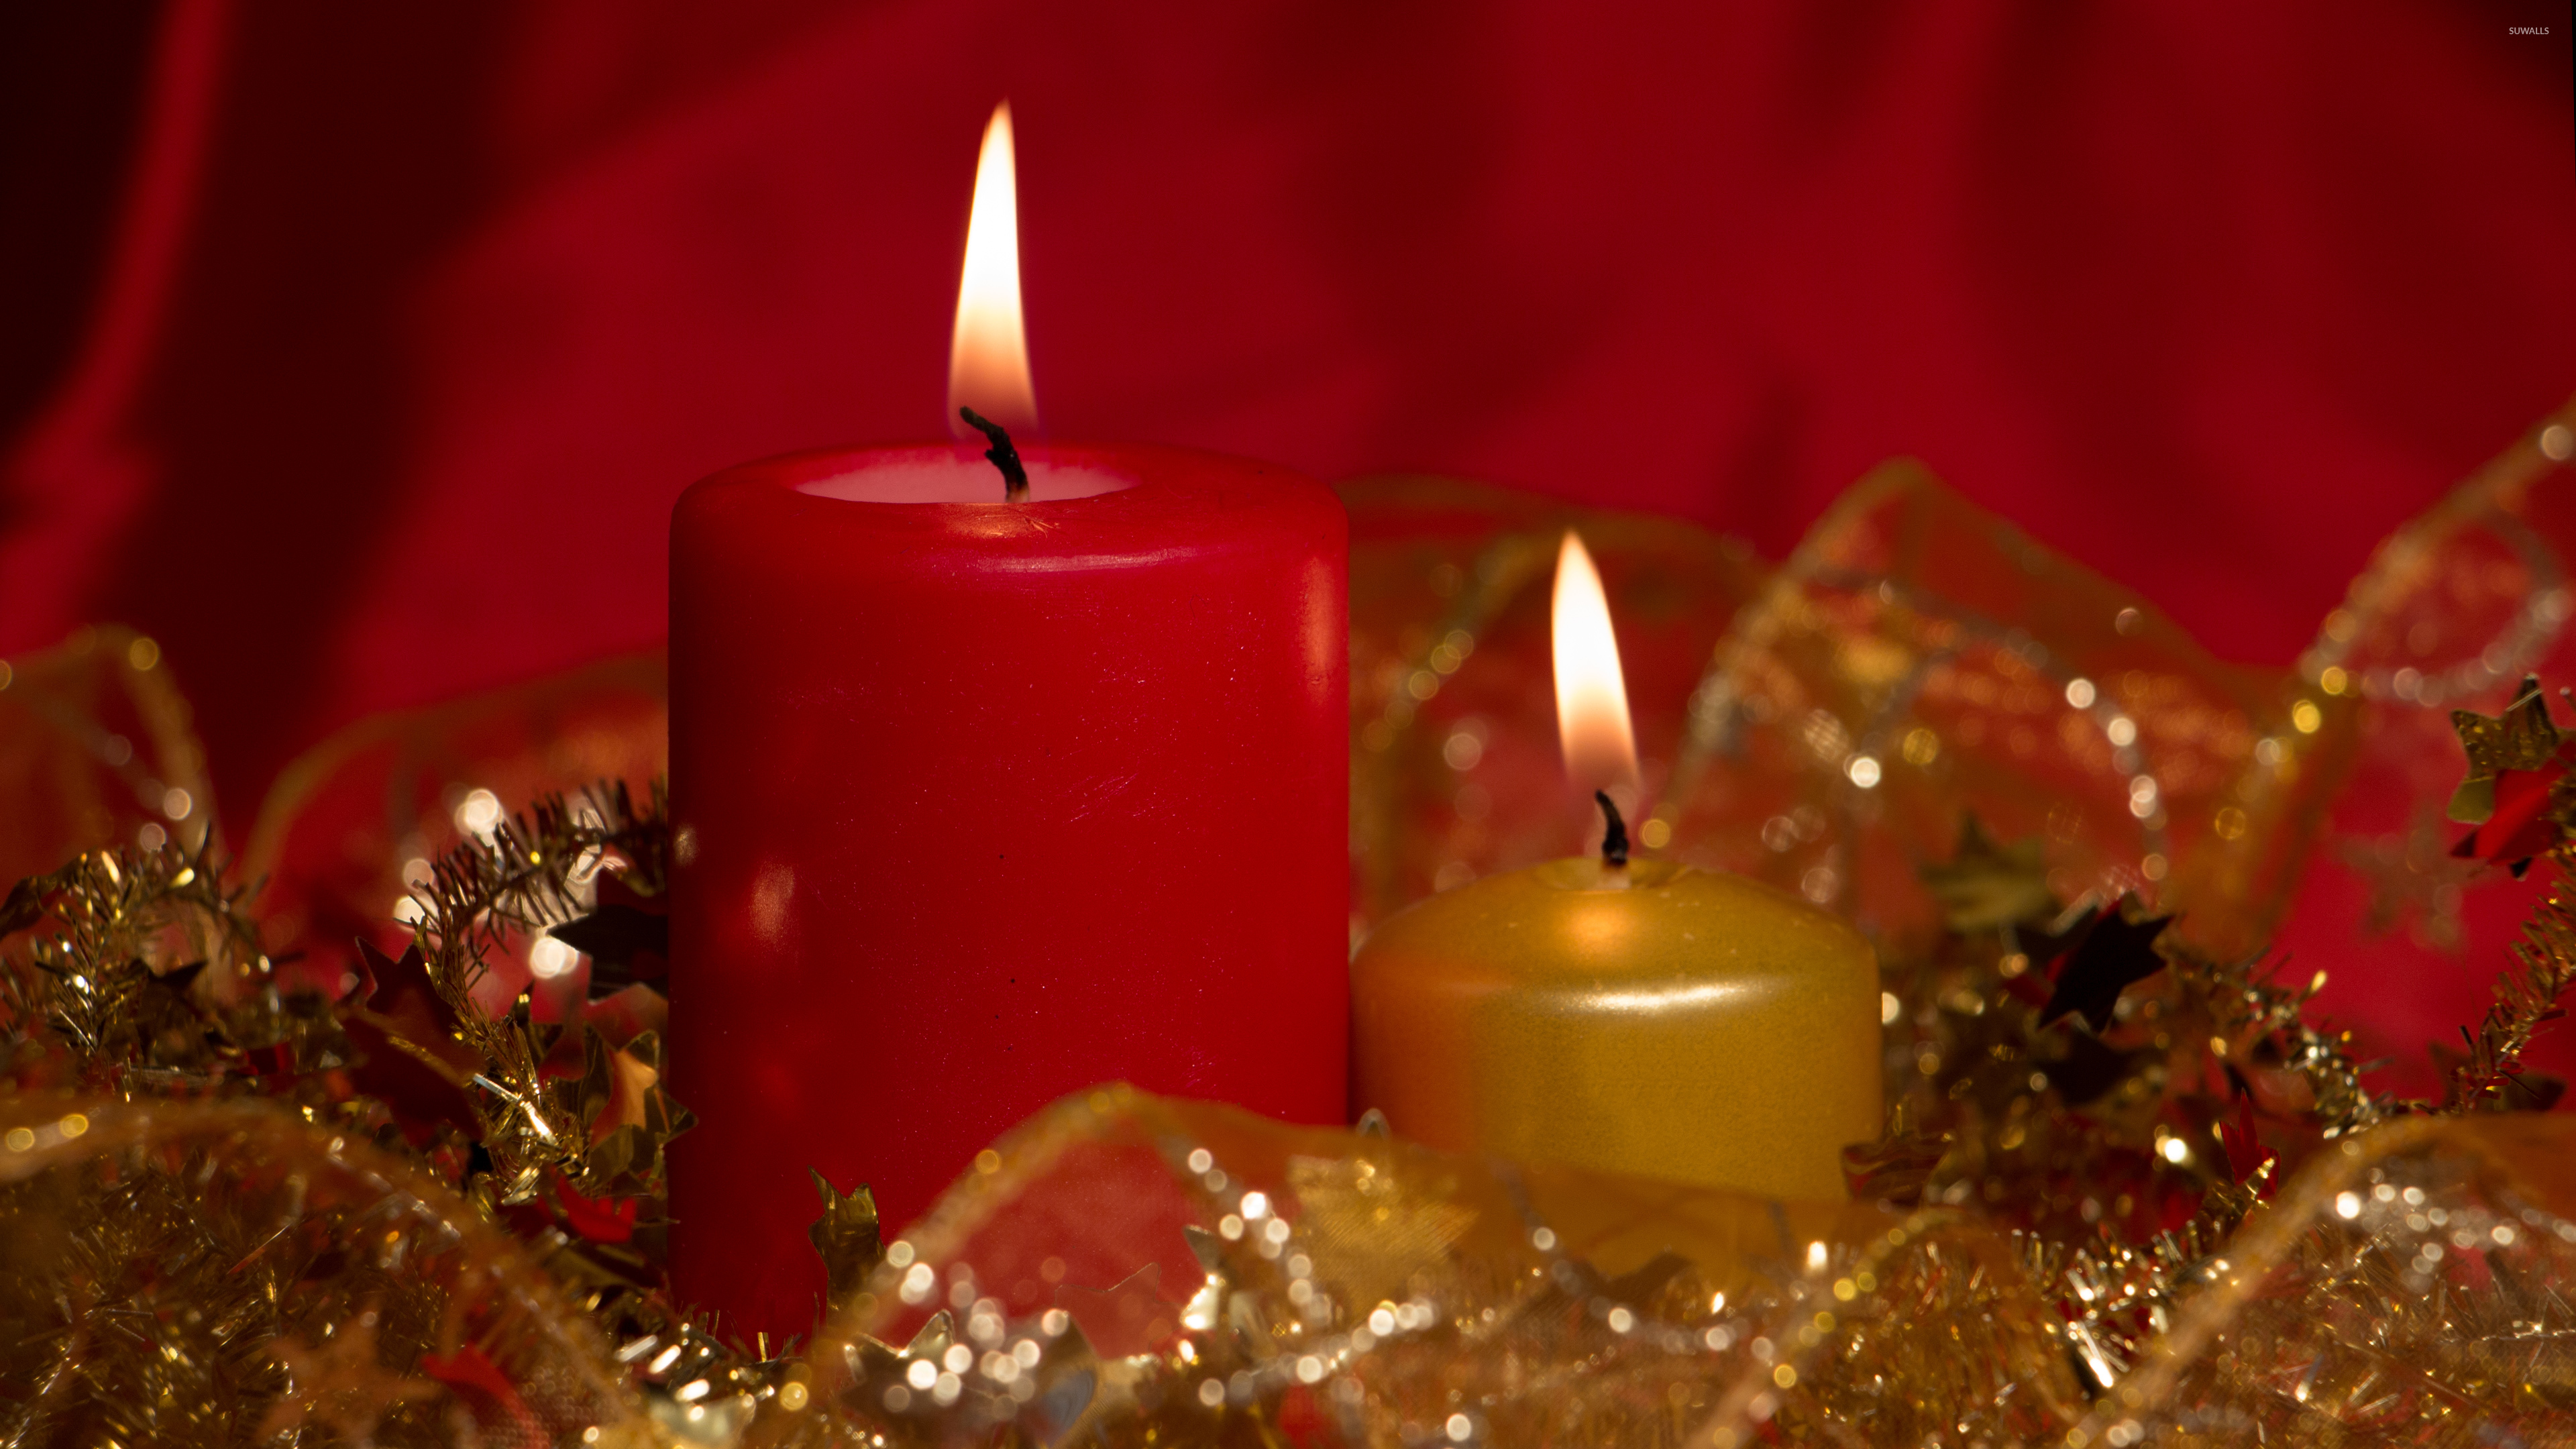 Red and golden Christmas candles wallpaper - Holiday wallpapers ...